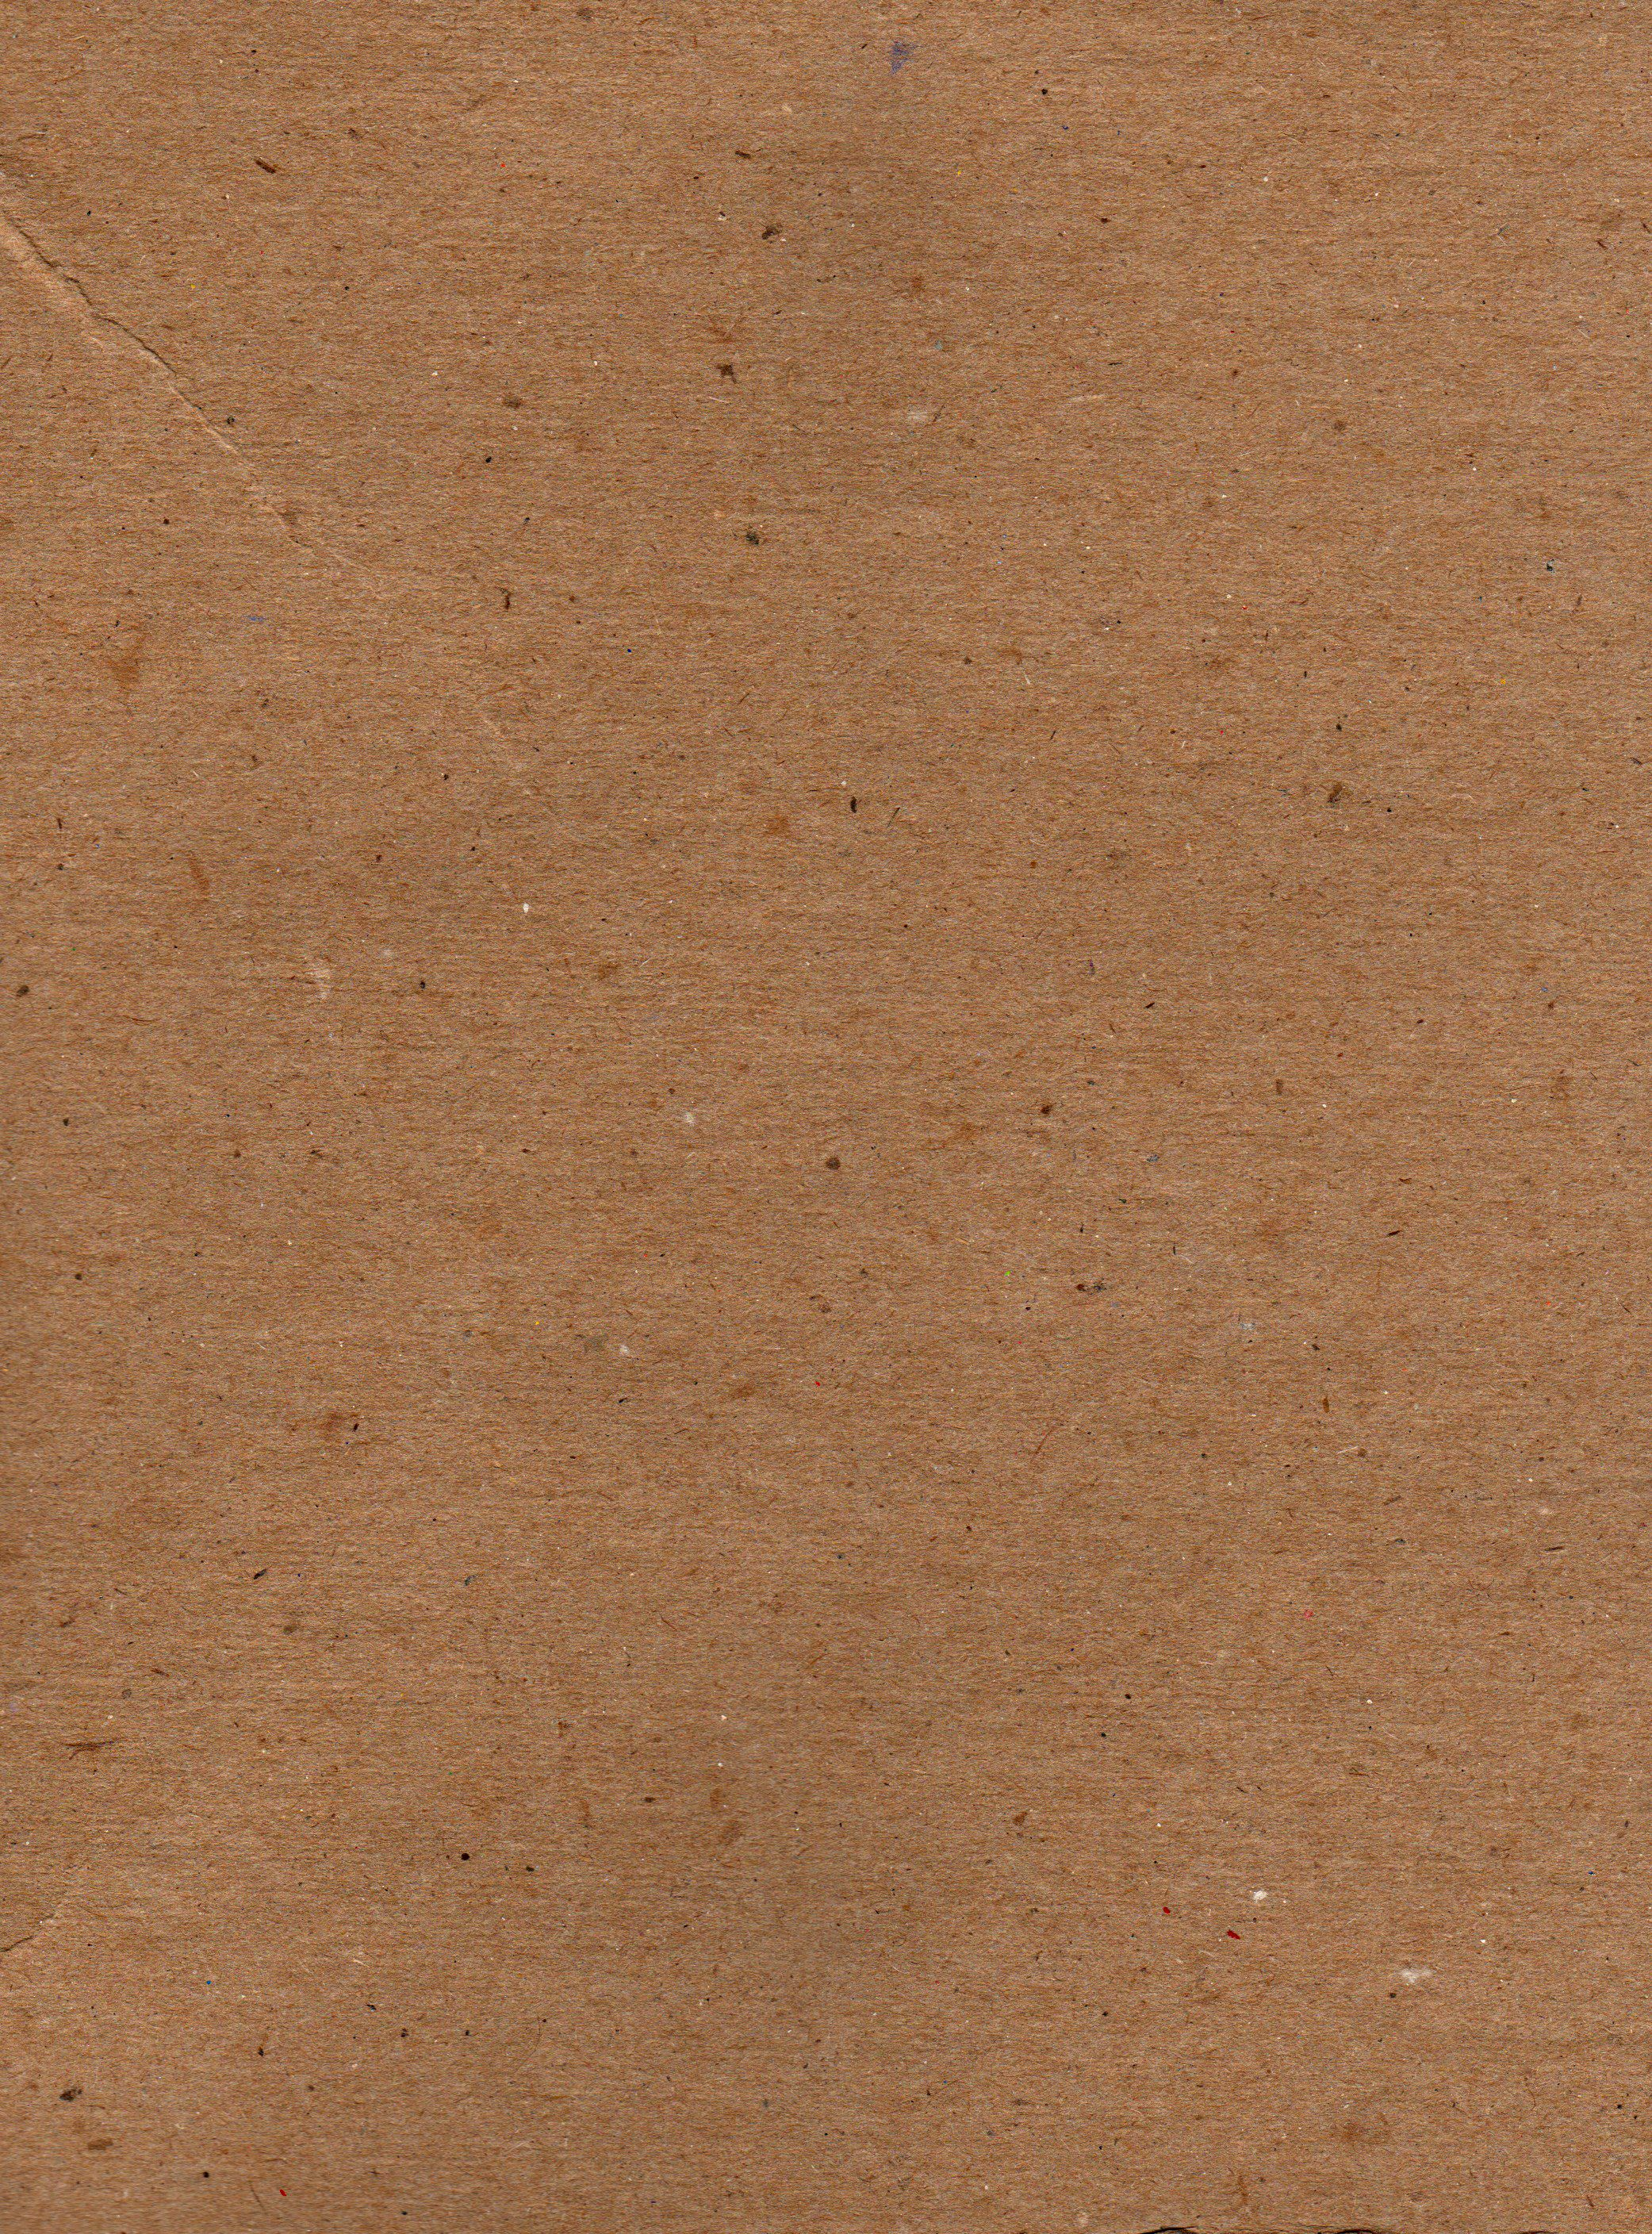 Brown Paper Bag Texture | Photoshop: Inspiring Textures ...